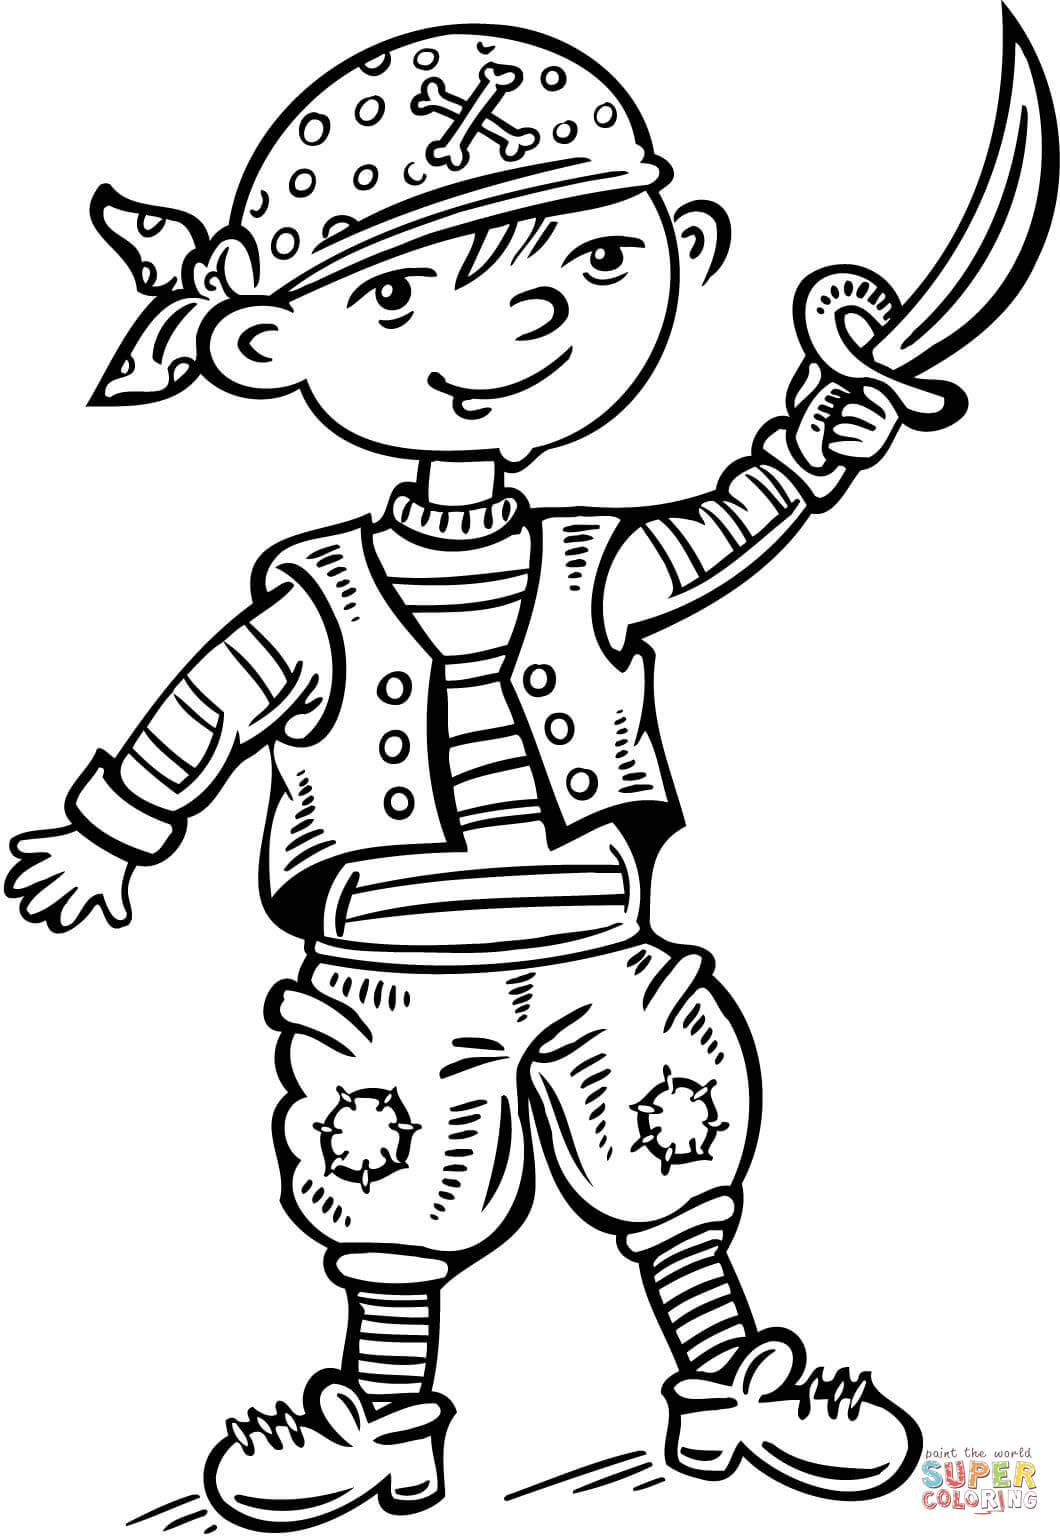 1060x1536 Coloring Pages Kids Pirate Pictures For Kids To Print Pirate